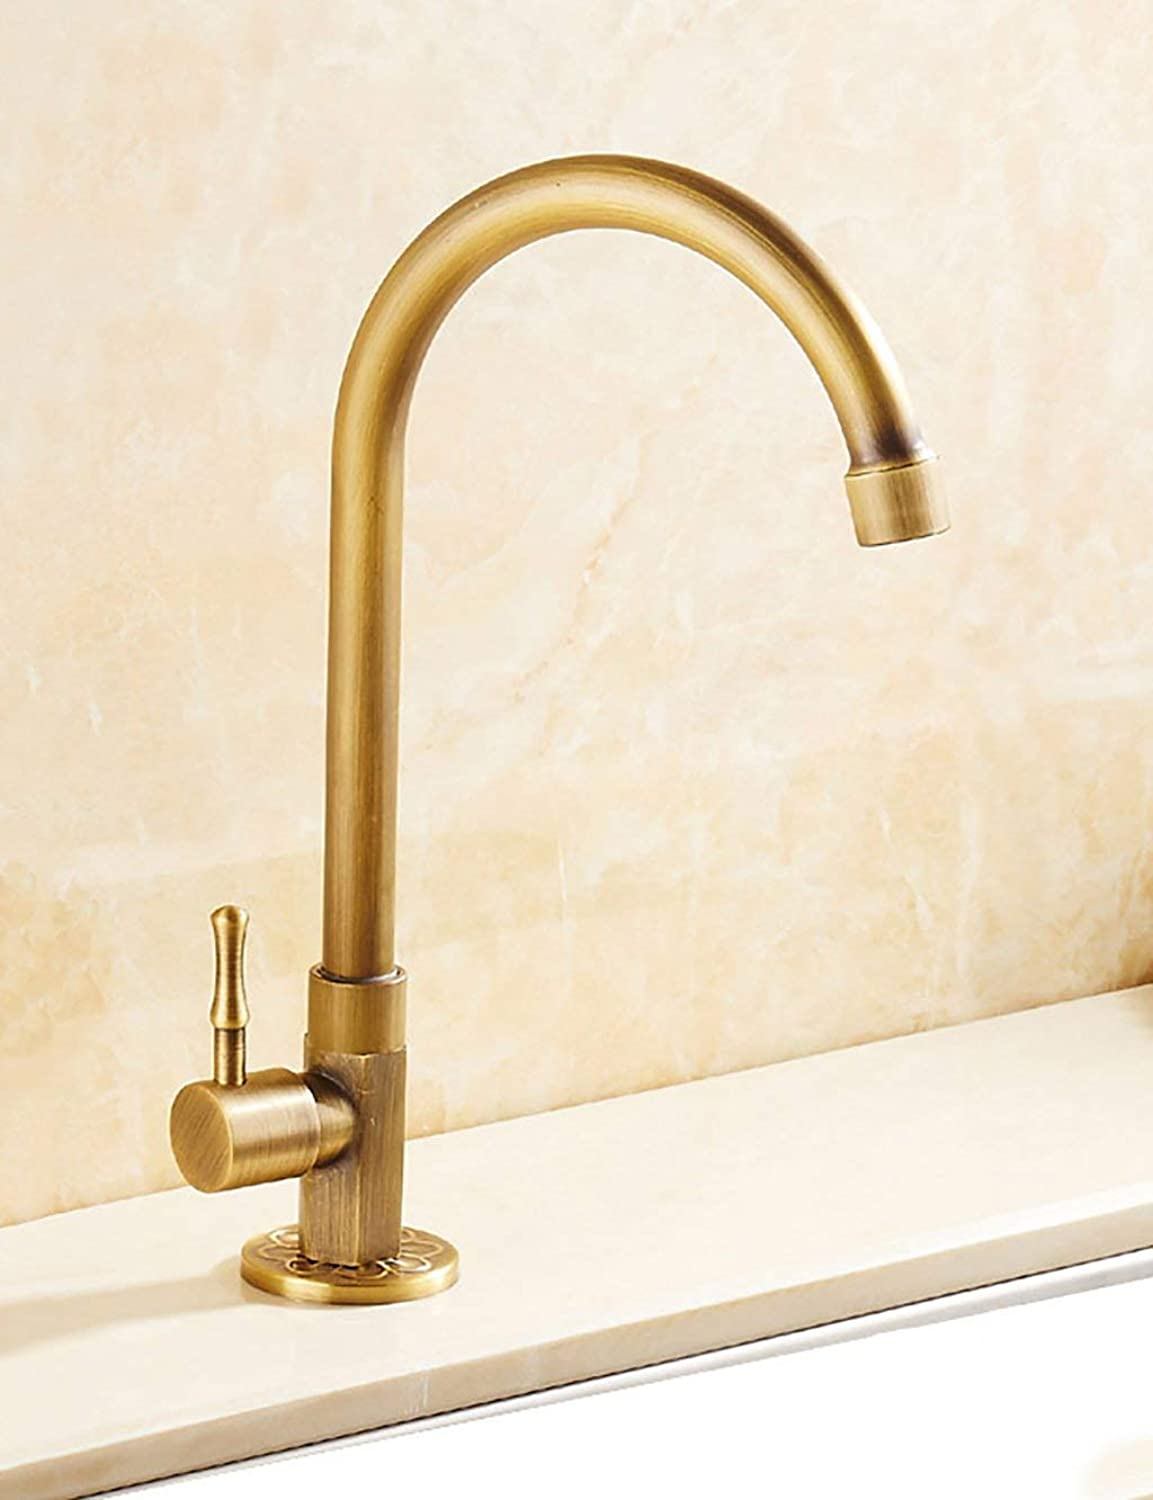 DYR Faucet European Style Household Kitchen Faucet Copper greenical Single Cold Turning